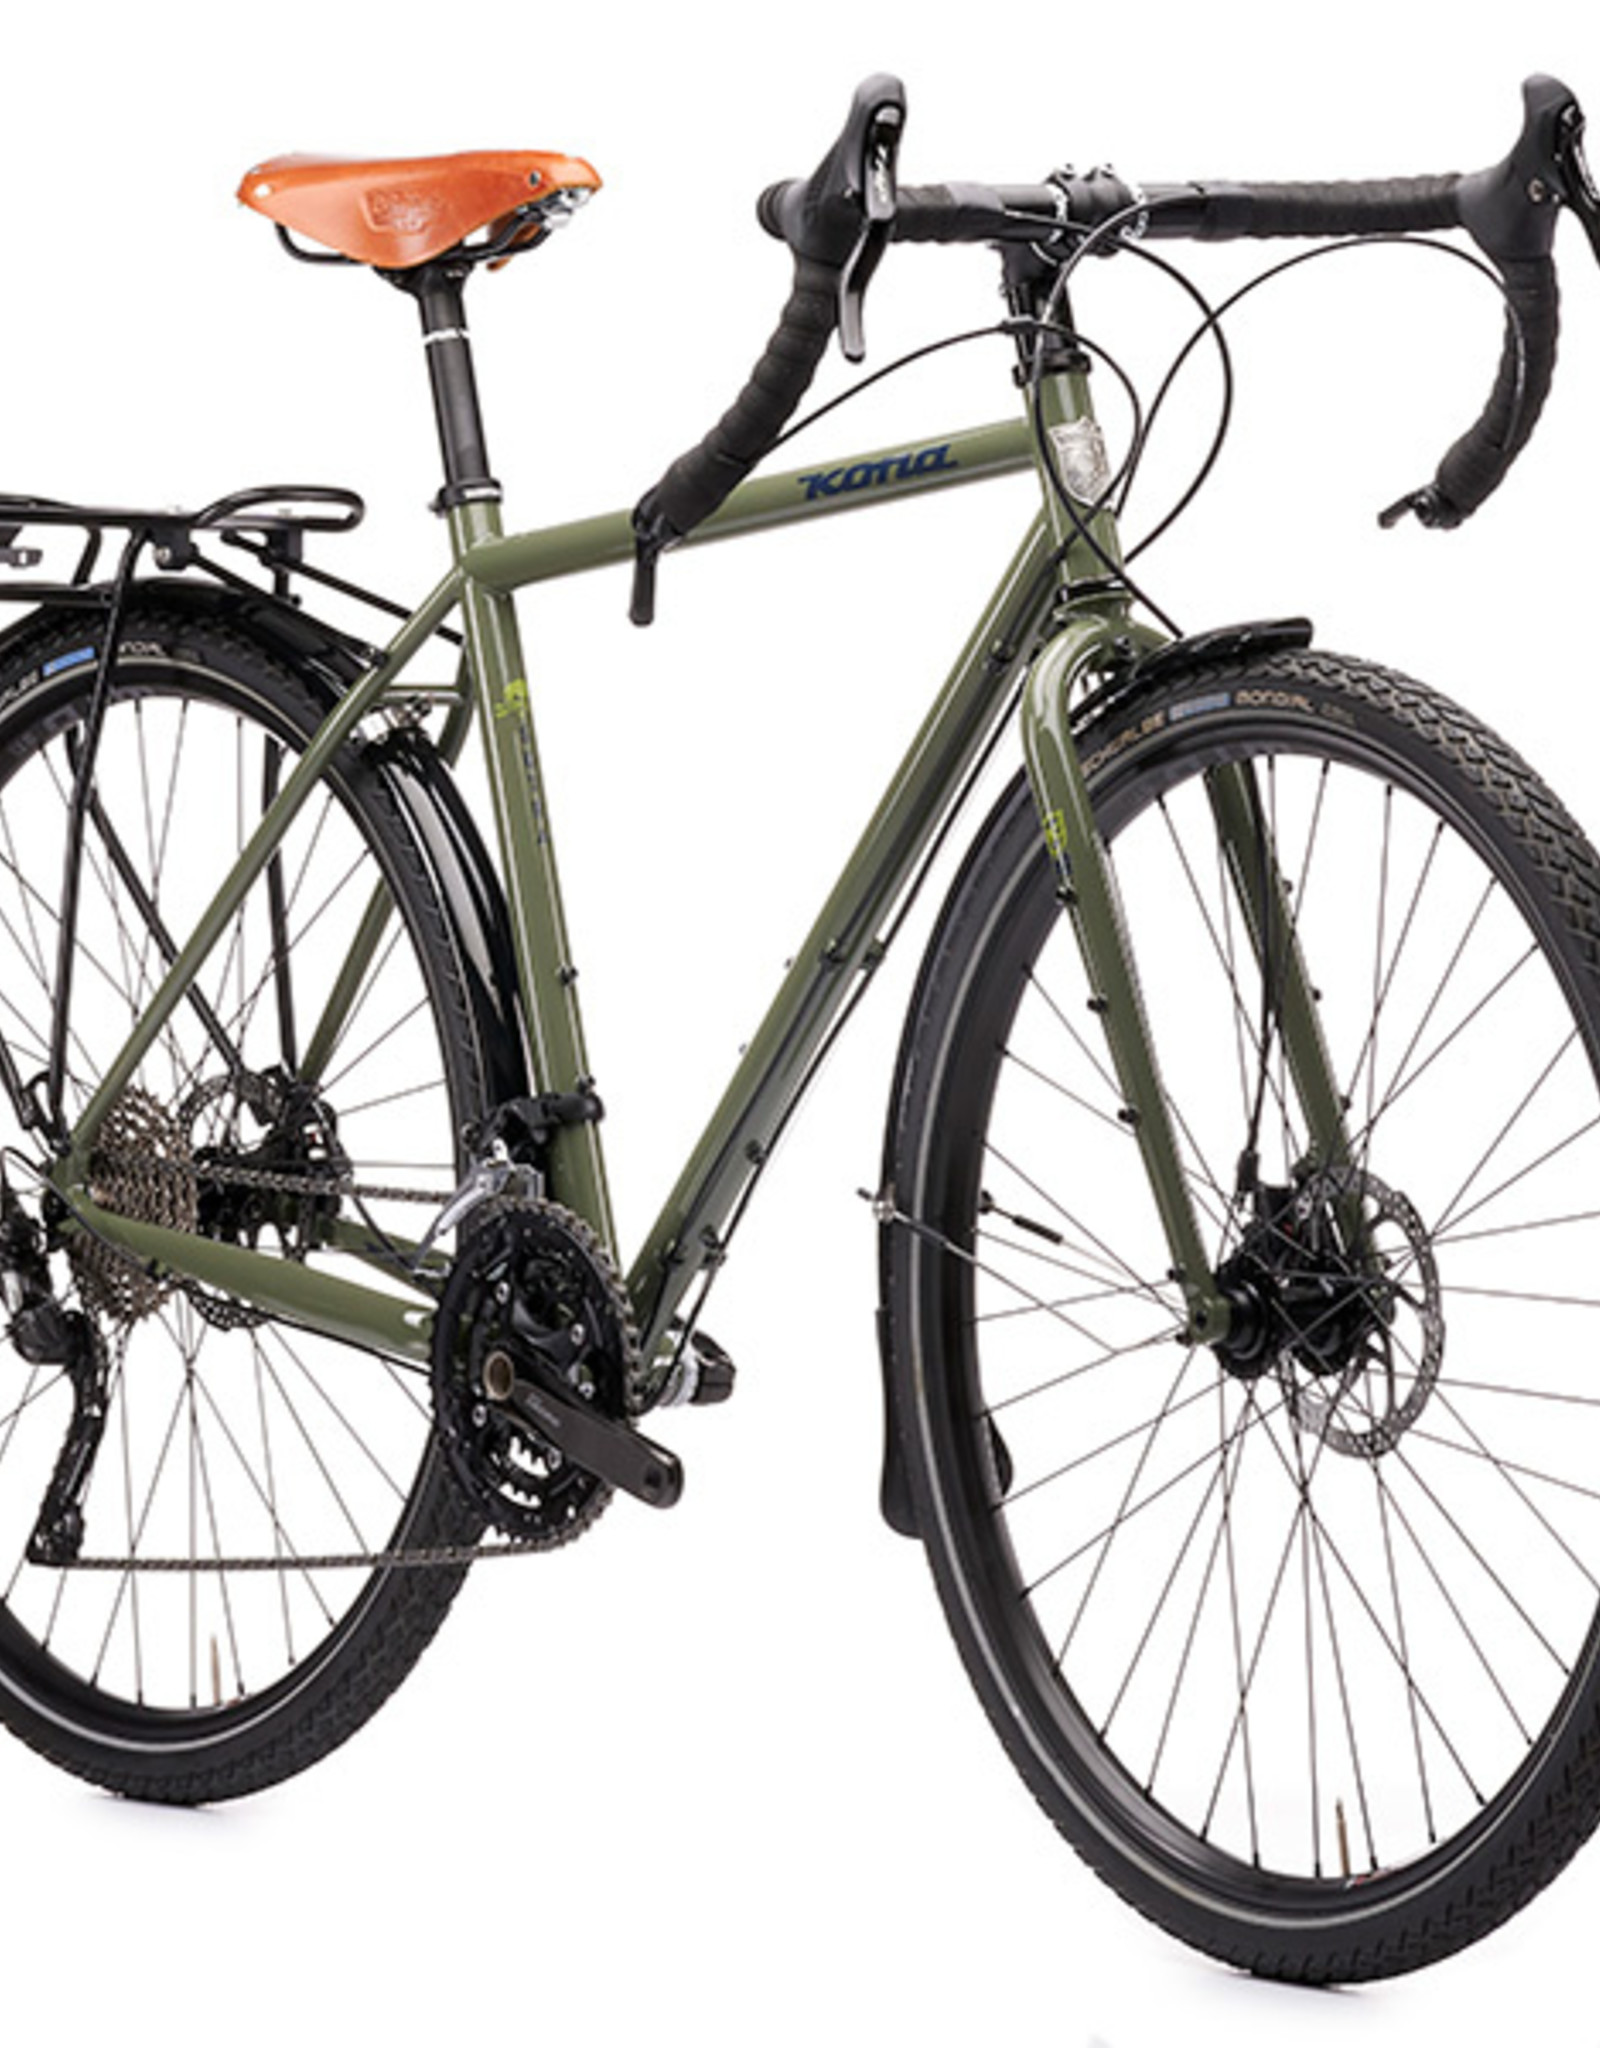 Kona Bicycles Kona Sutra (Concrete Green) 2021